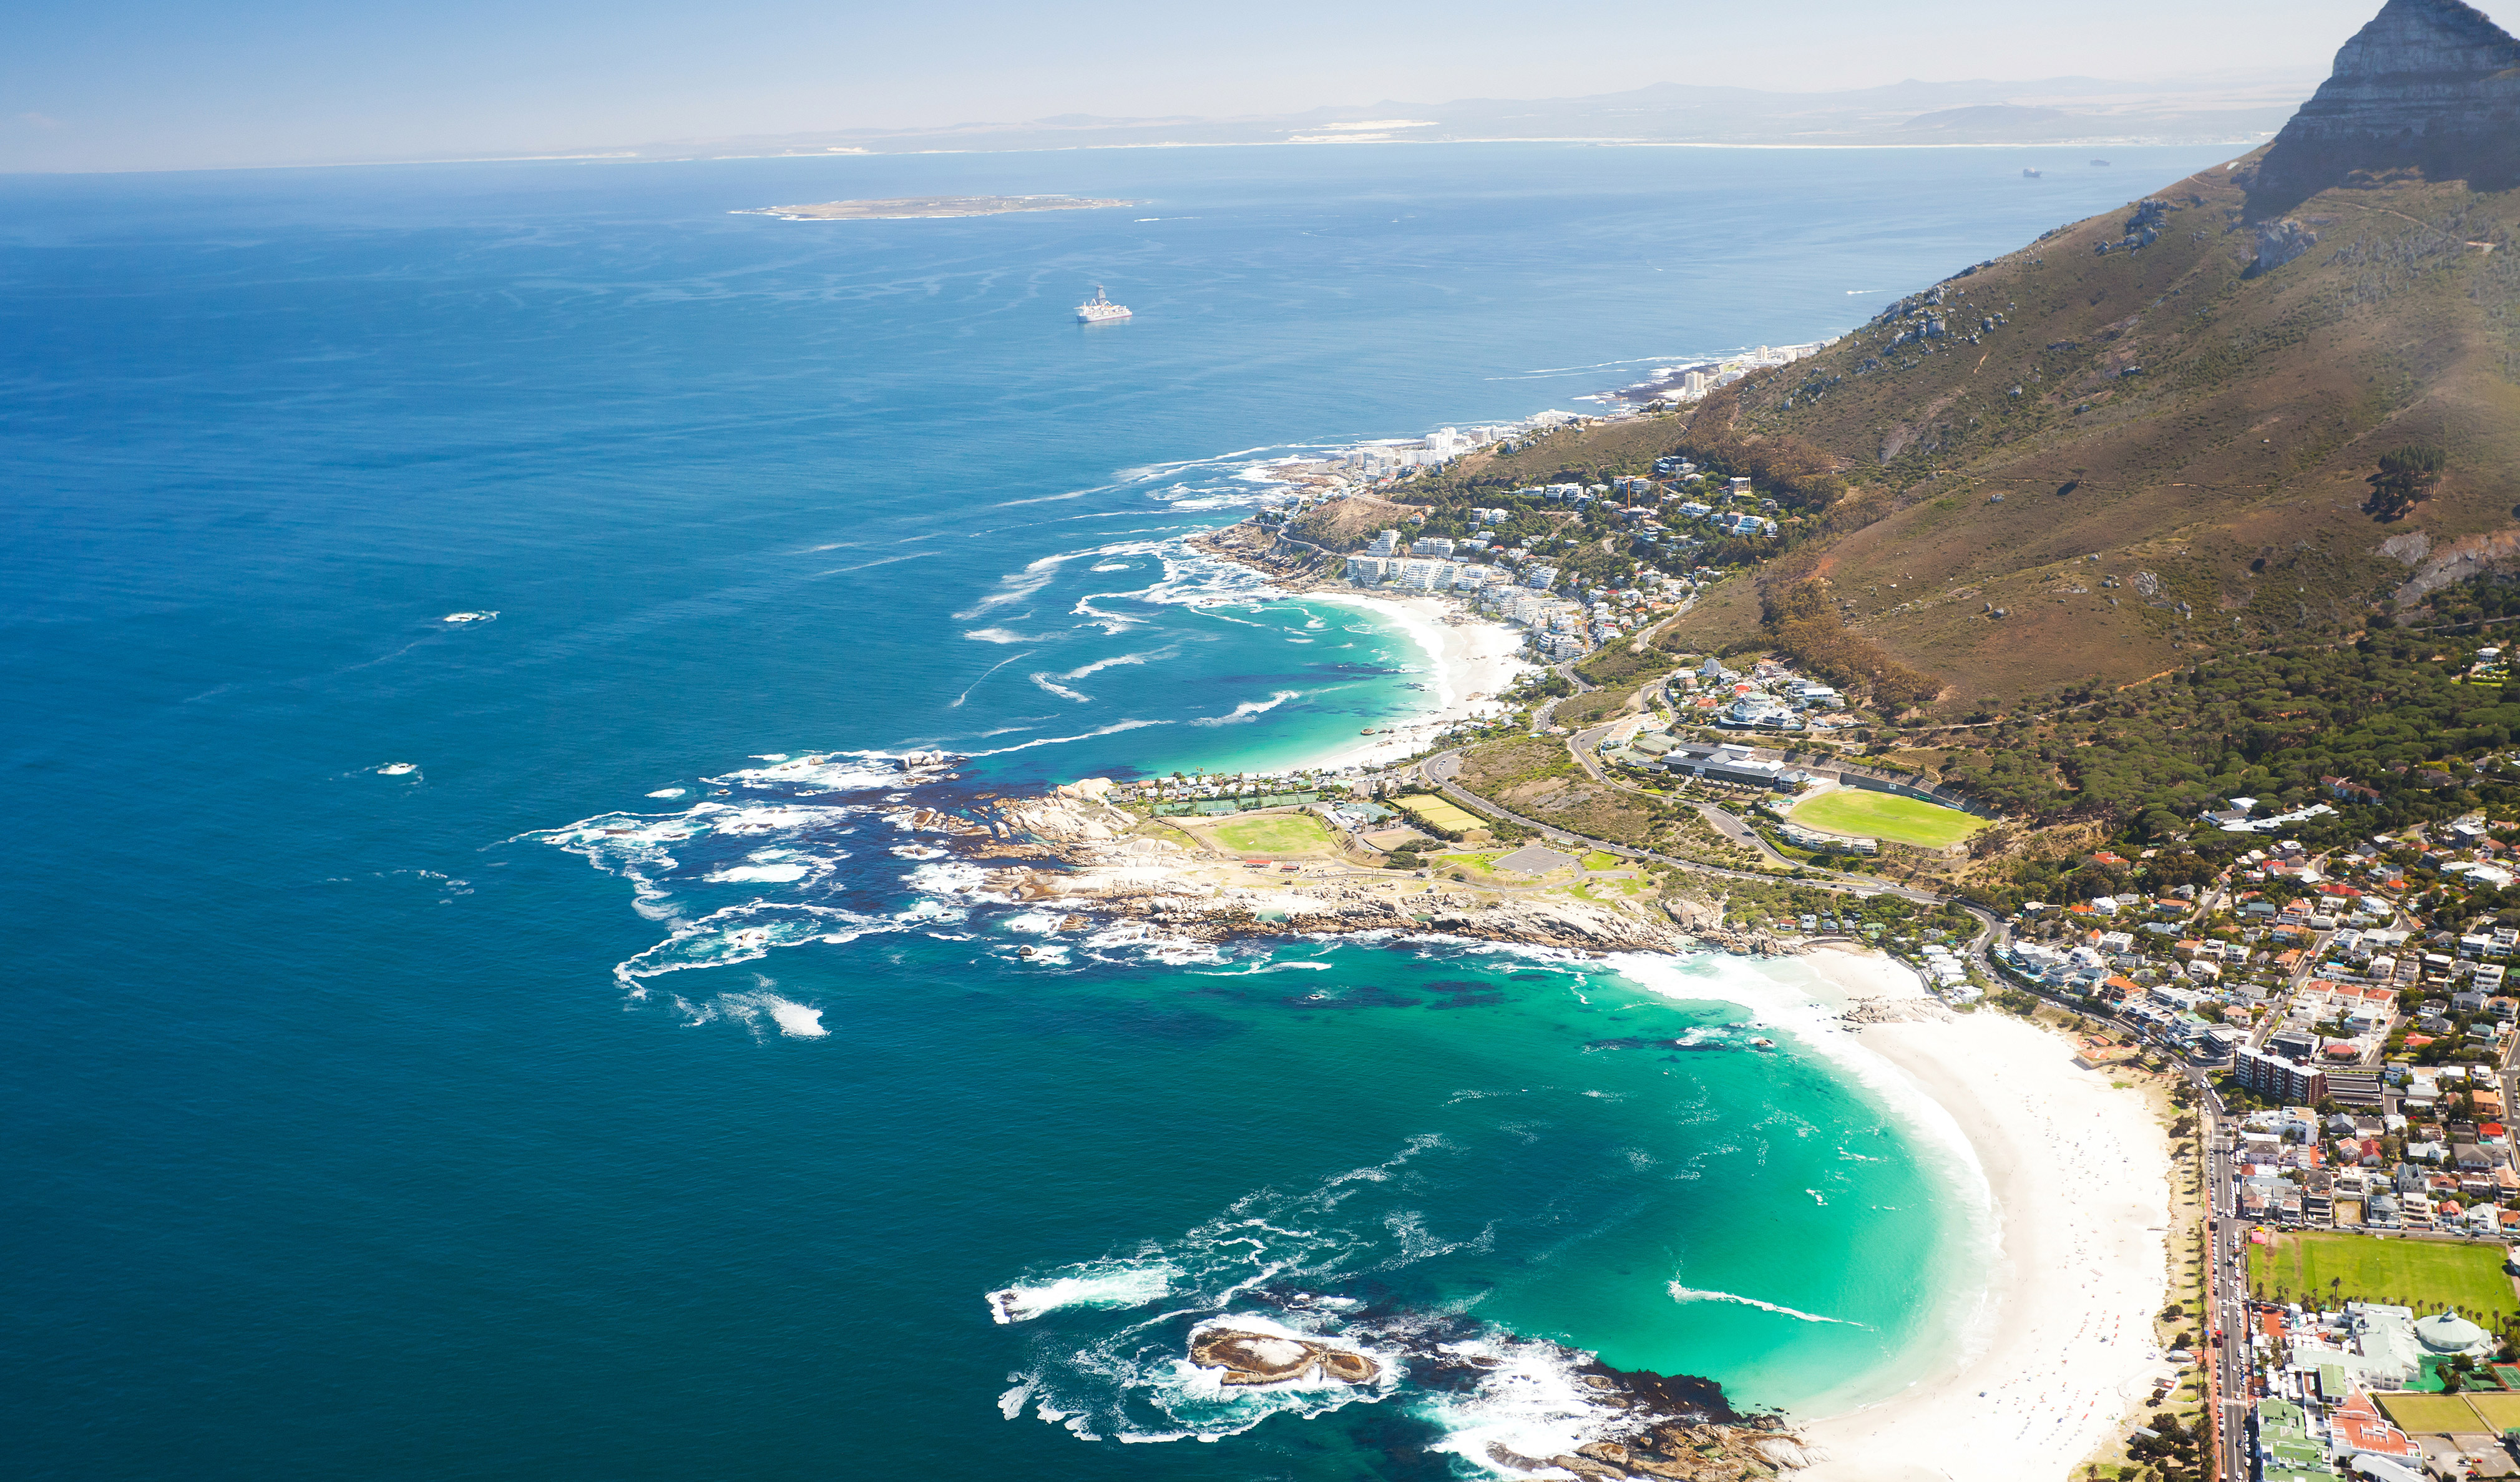 Discover the beautiful beaches of the Cape